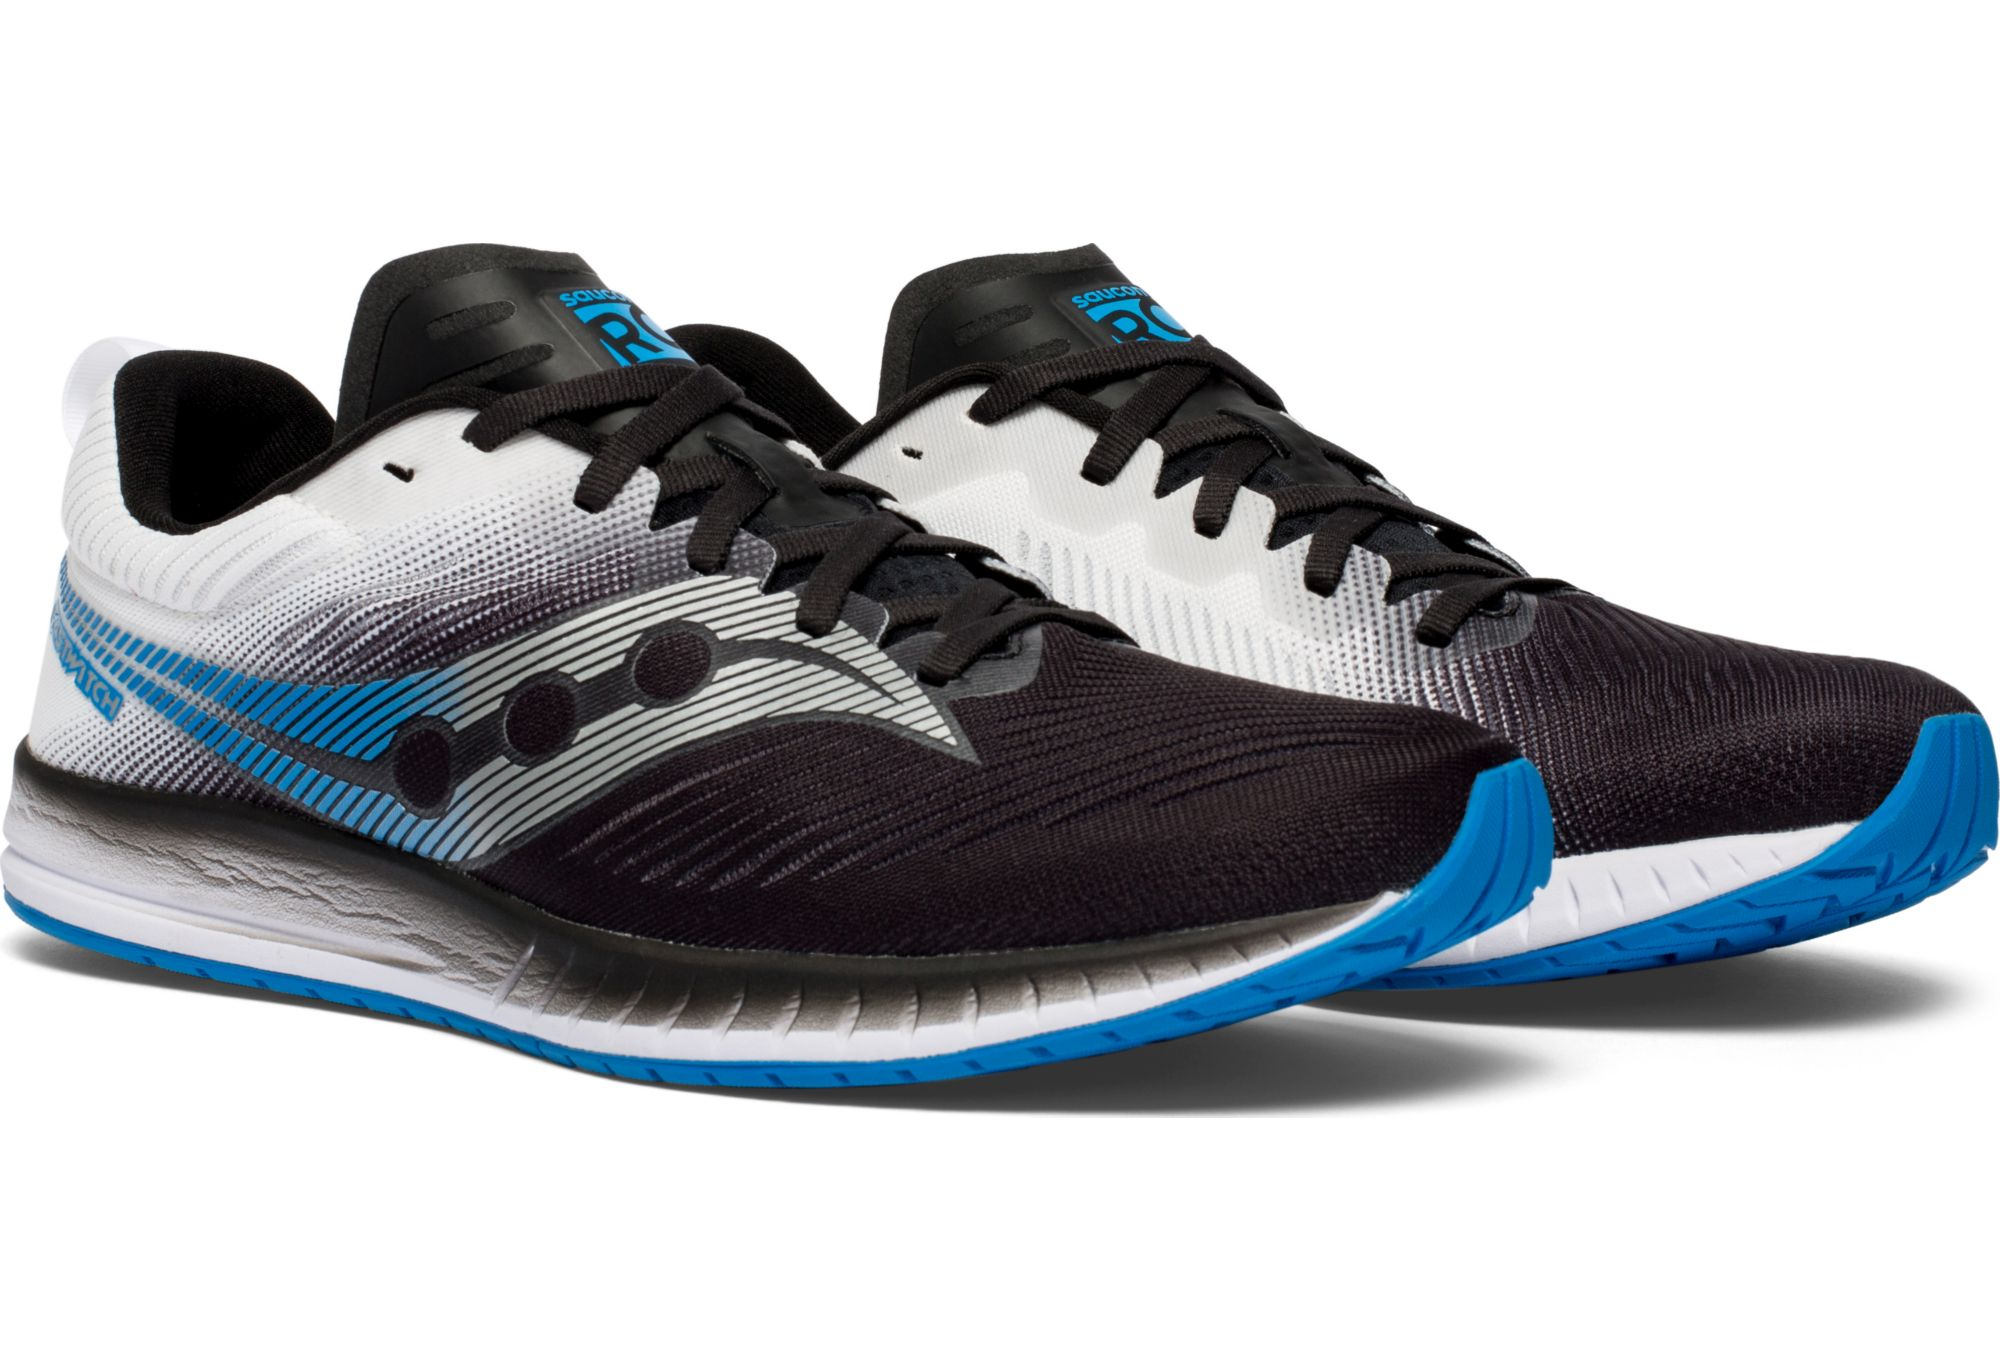 Saucony Fastwitch 9 Running Shoes Black